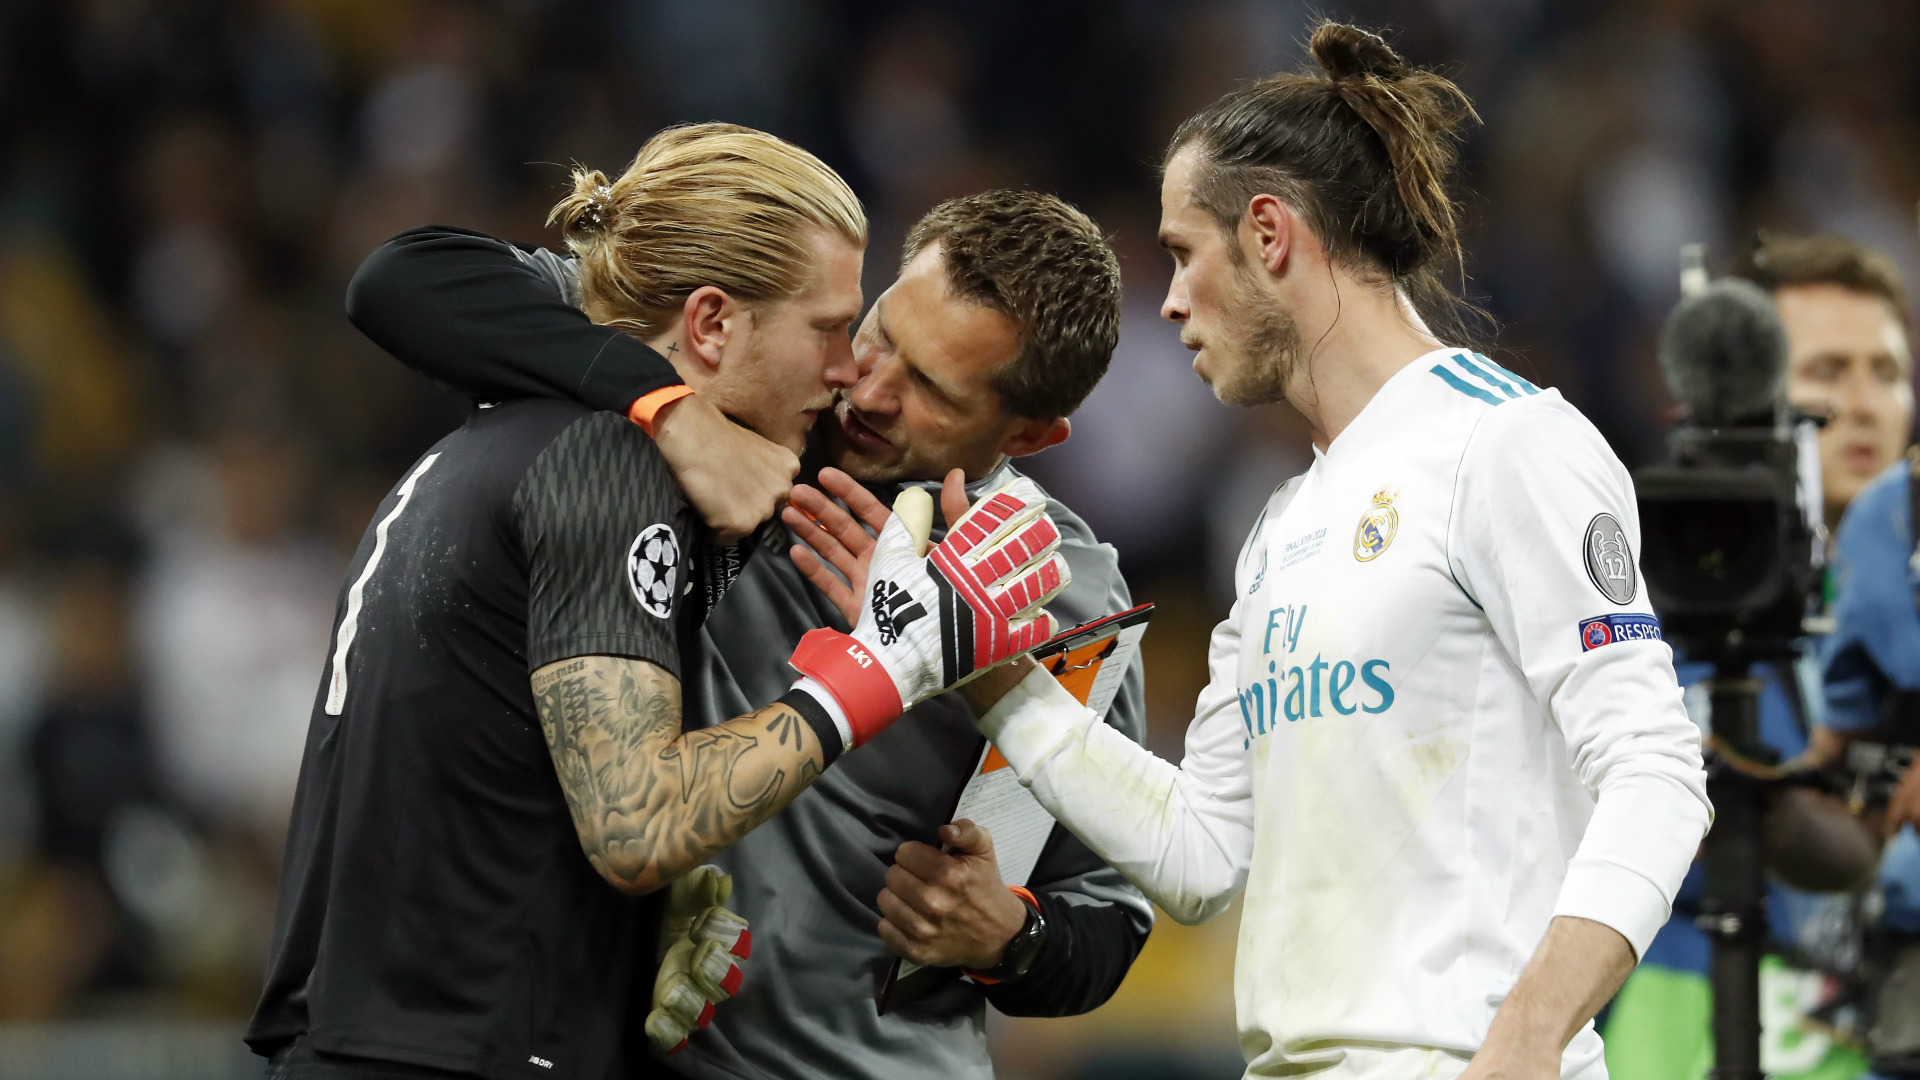 Loris Karius Gareth Bale Liverpool Real Madrid 2017-18